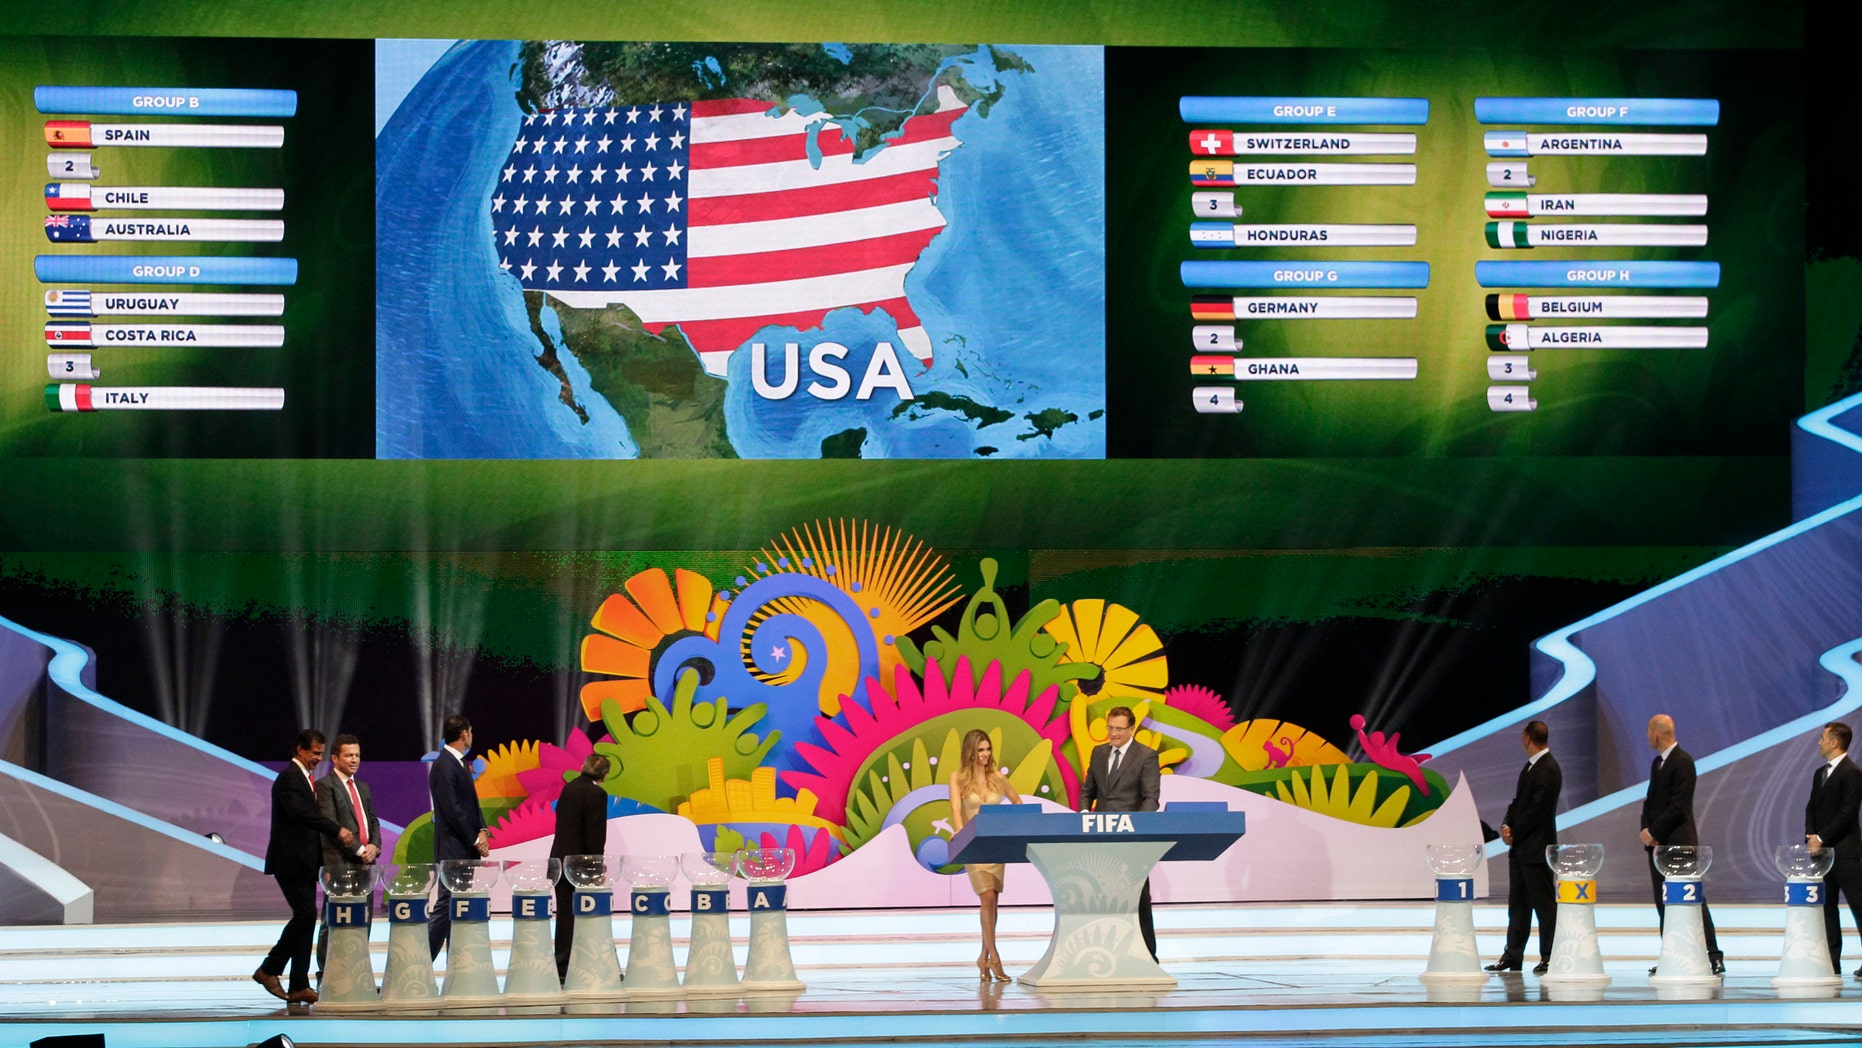 The lot of the United States is drawn during the draw ceremony for the 2014 soccer World Cup in Costa do Sauipe near Salvador, Brazil, Friday, Dec. 6, 2013. (AP Photo/Silvia Izquierdo)